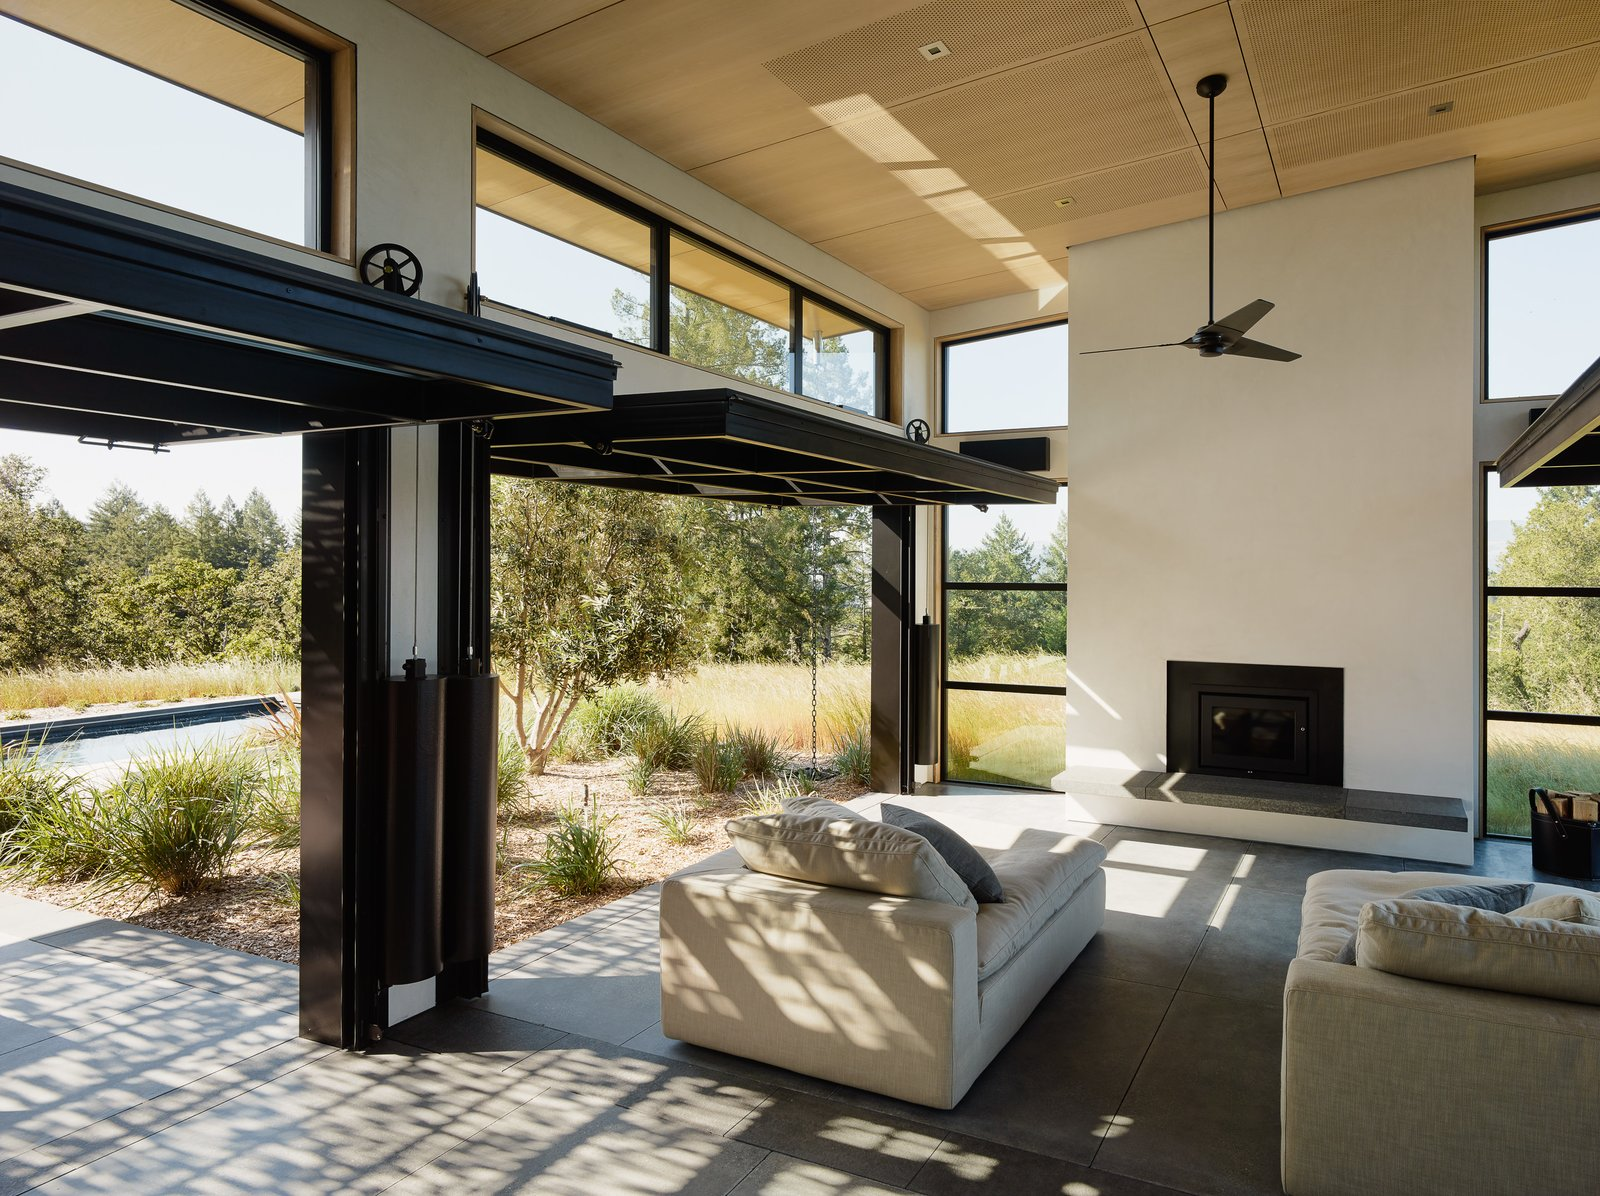 Living Room, Standard Layout Fireplace, Sofa, Recessed Lighting, and Concrete Floor  Photo 2 of 6 in Top 5 Homes of the Week That Welcome the Outdoors In from Sonoma Wine Country I